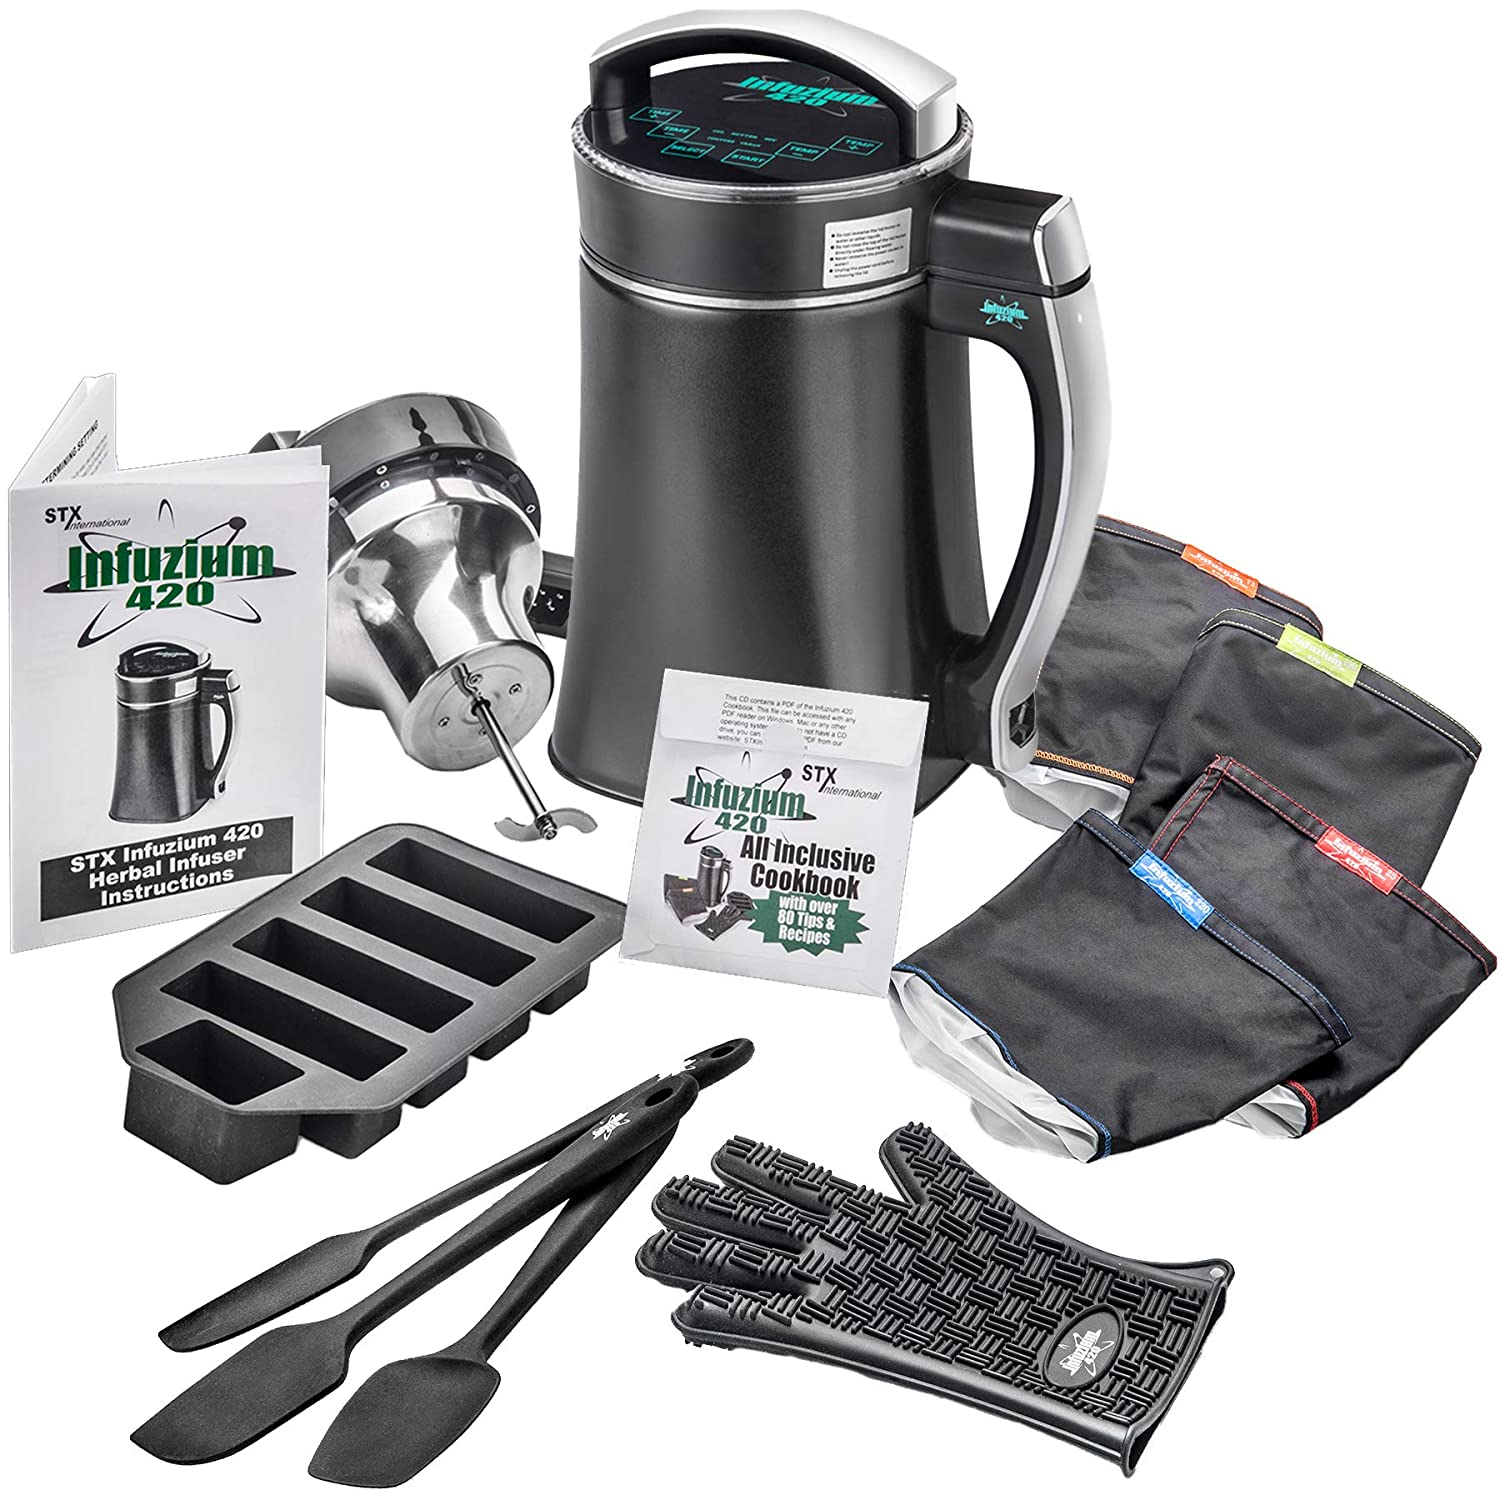 """STX Infuzium 420 Herbal Butter Infuser Machine - """"2 Sticks (1 Cup) ~ 8 Sticks (4 Cups) Butter"""". Includes: 2 Filters, Silicone Glove & Butter Mold plus The Infuzium 420 Cookbook - 80 Magical Recipes/Tips (Bonus - 2 Extra Filters & 3 Silicone Spatulas)"""